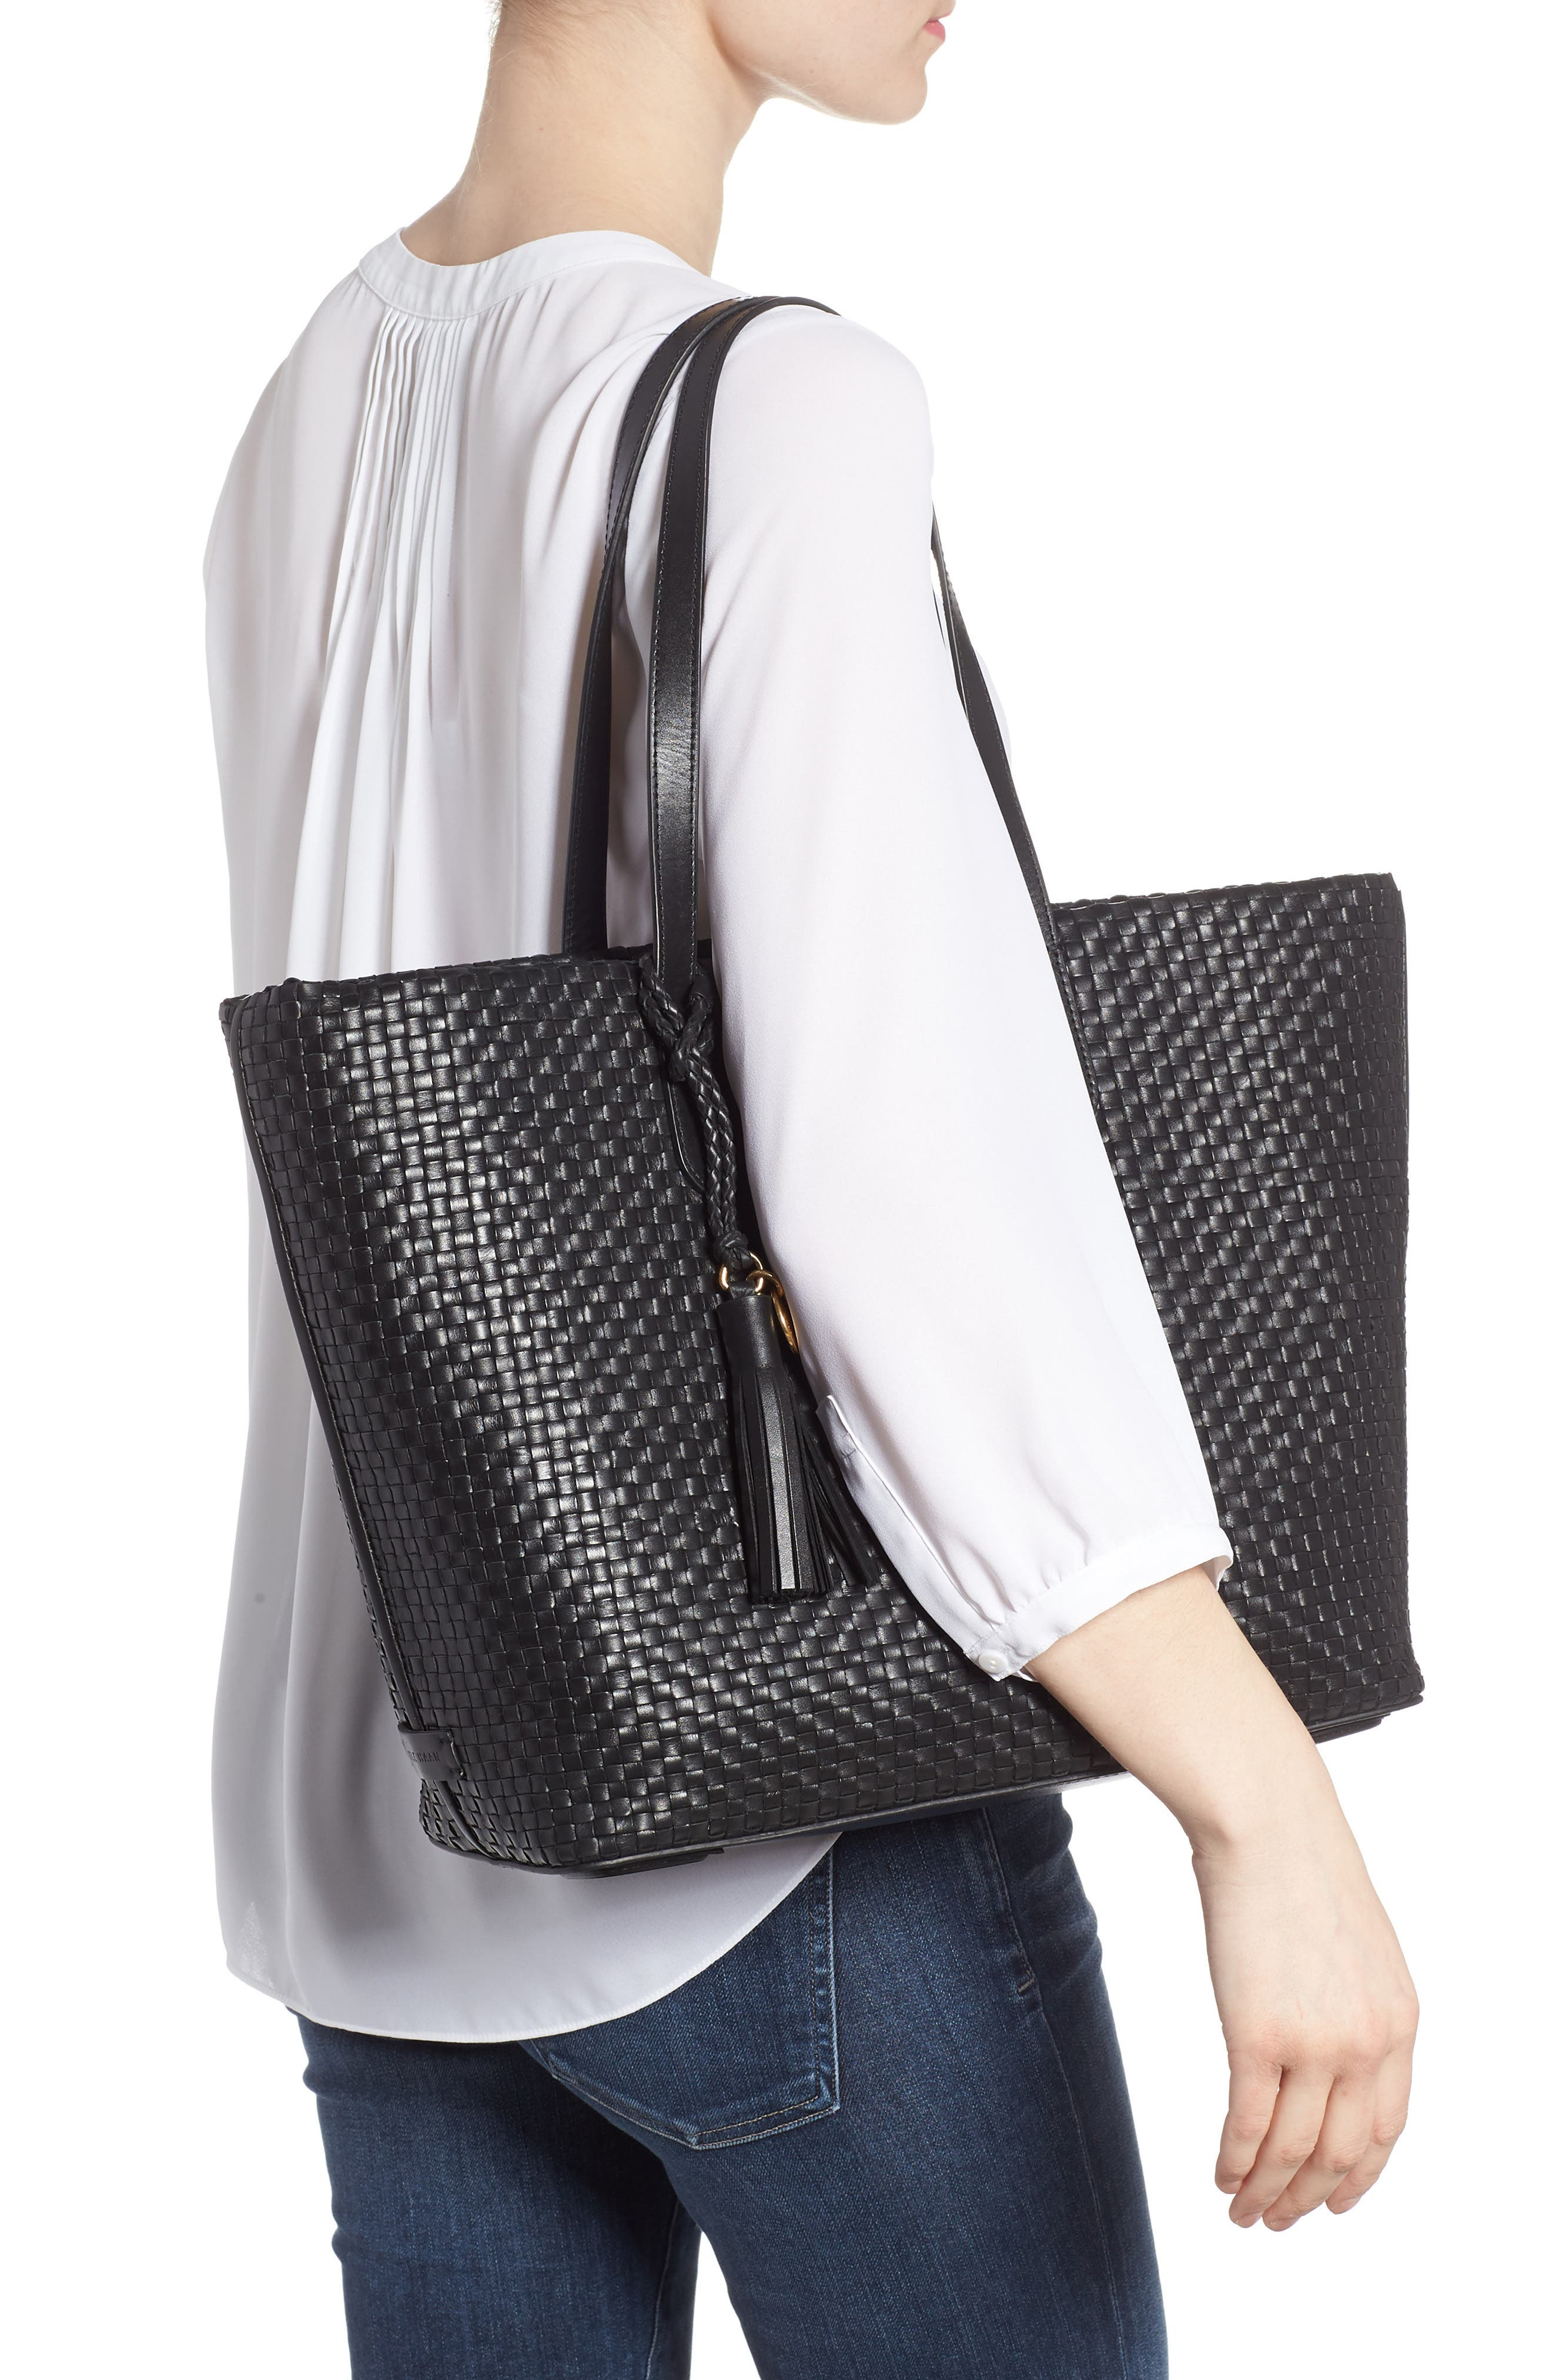 Payson RFID Woven Leather Tote,                             Alternate thumbnail 2, color,                             001